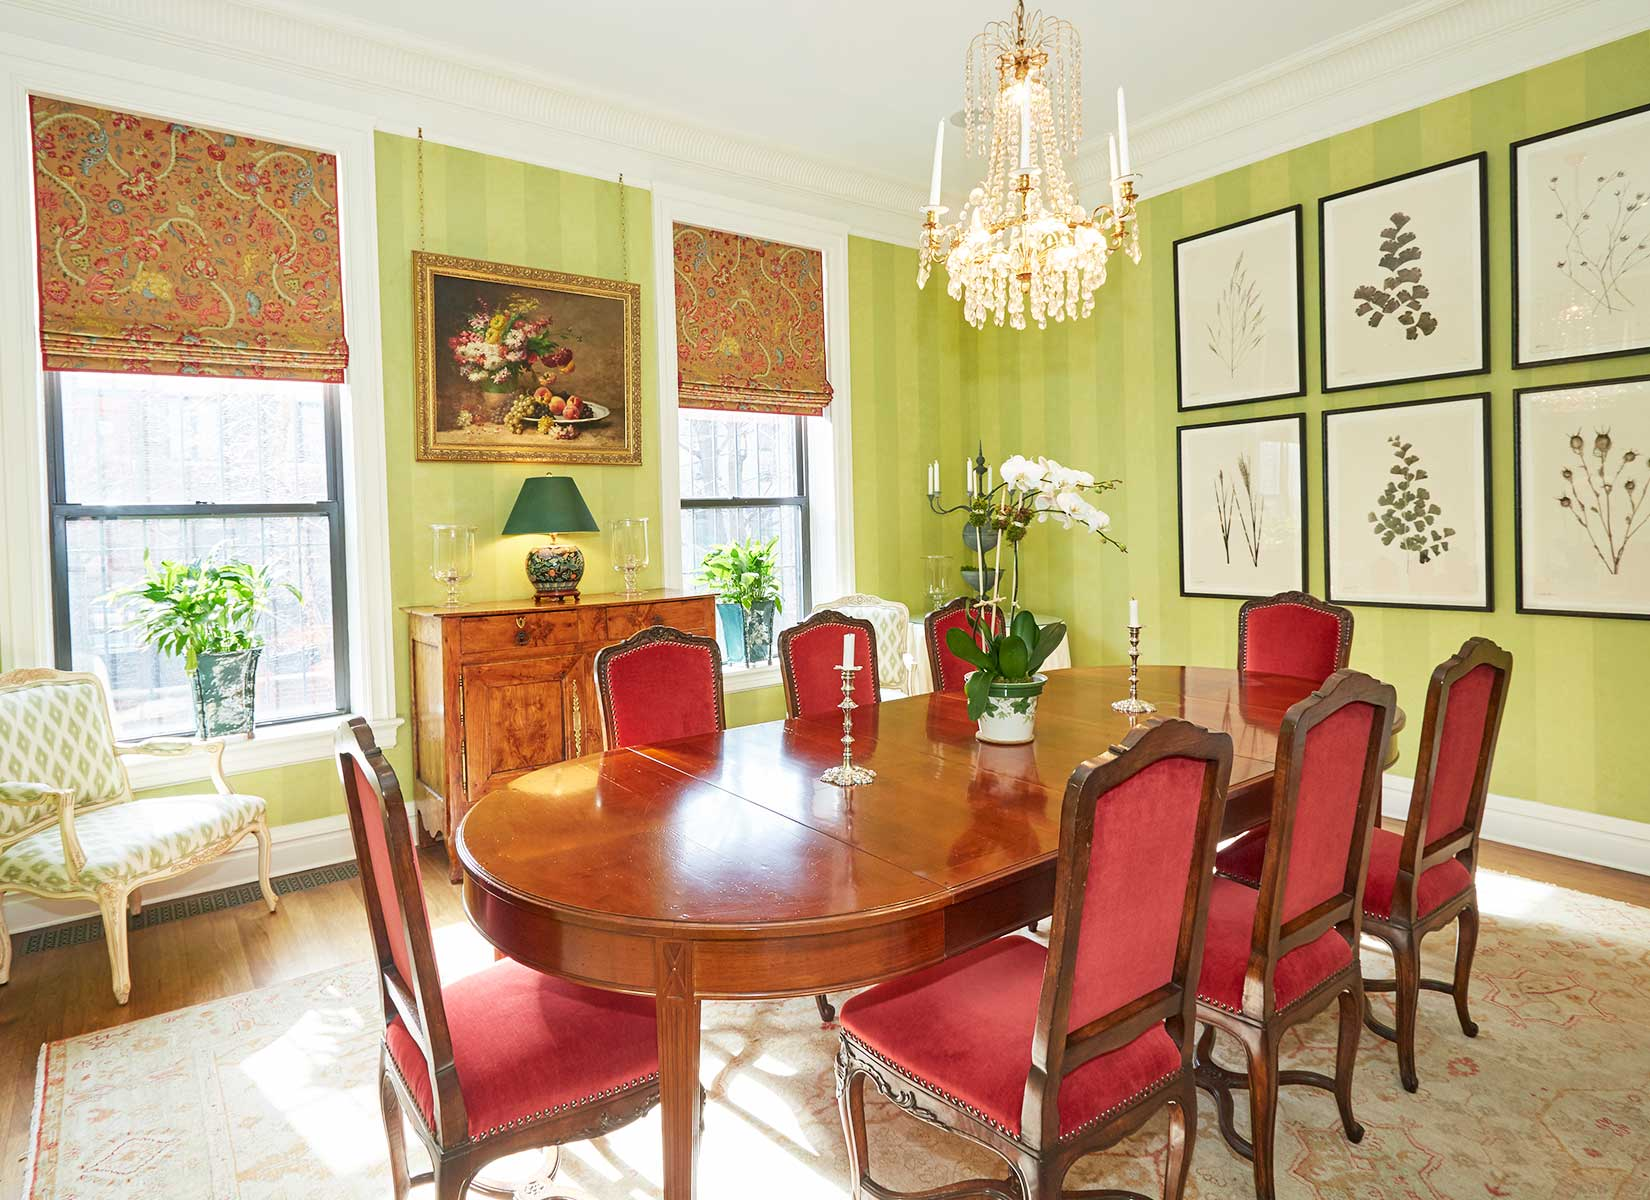 The formal dining room is accented by elaborate moldings and two large windows facing south.